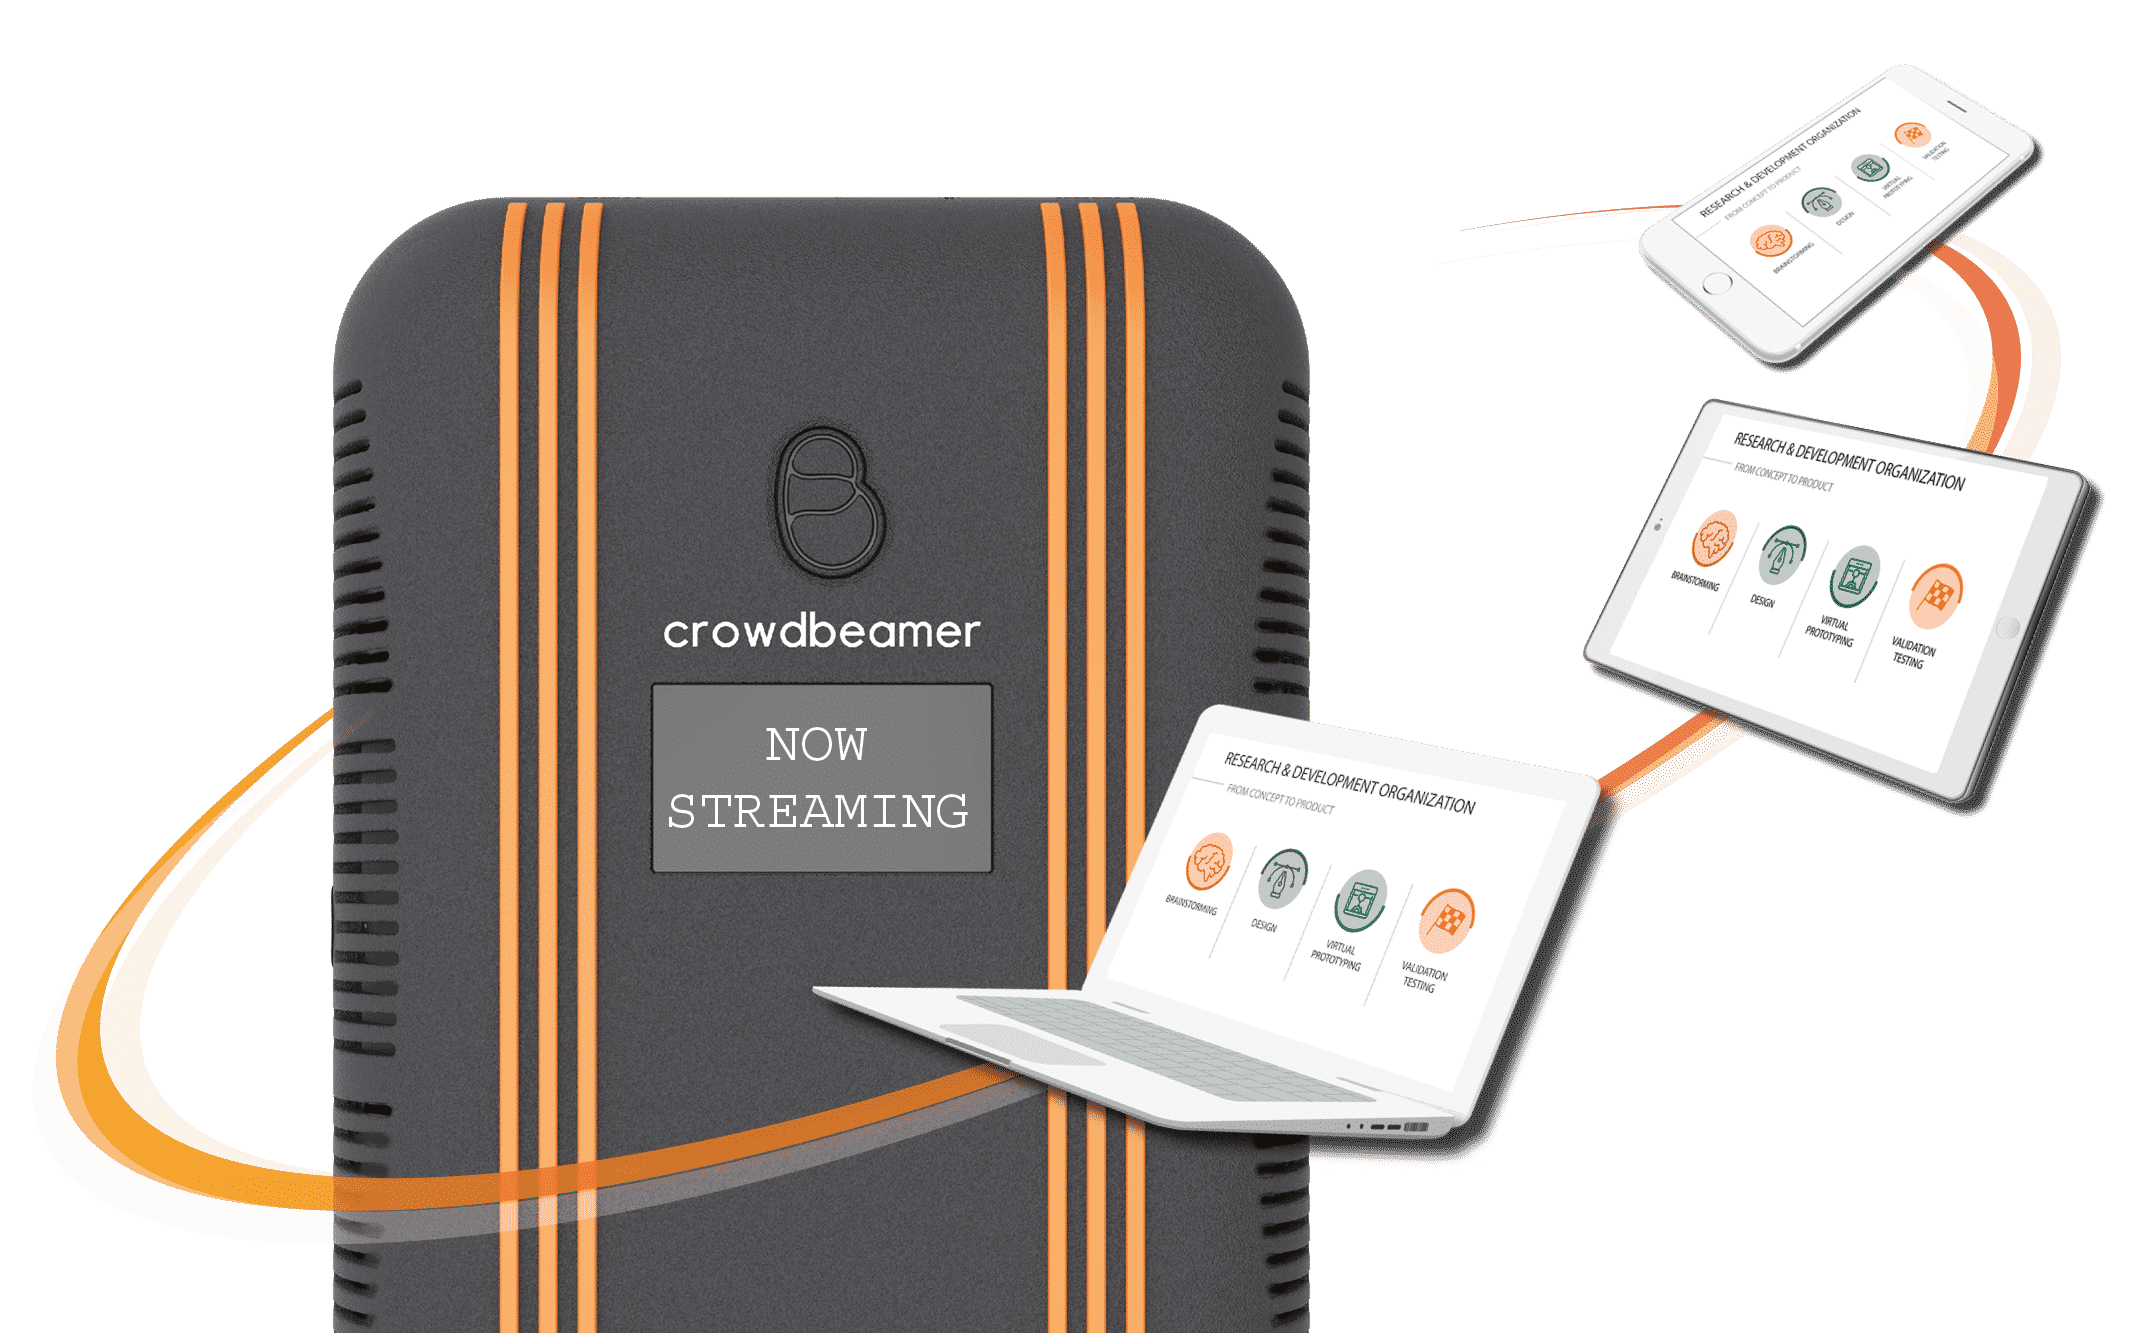 Meet CrowdBeamer, The Presentation System That Amplifies Your Message